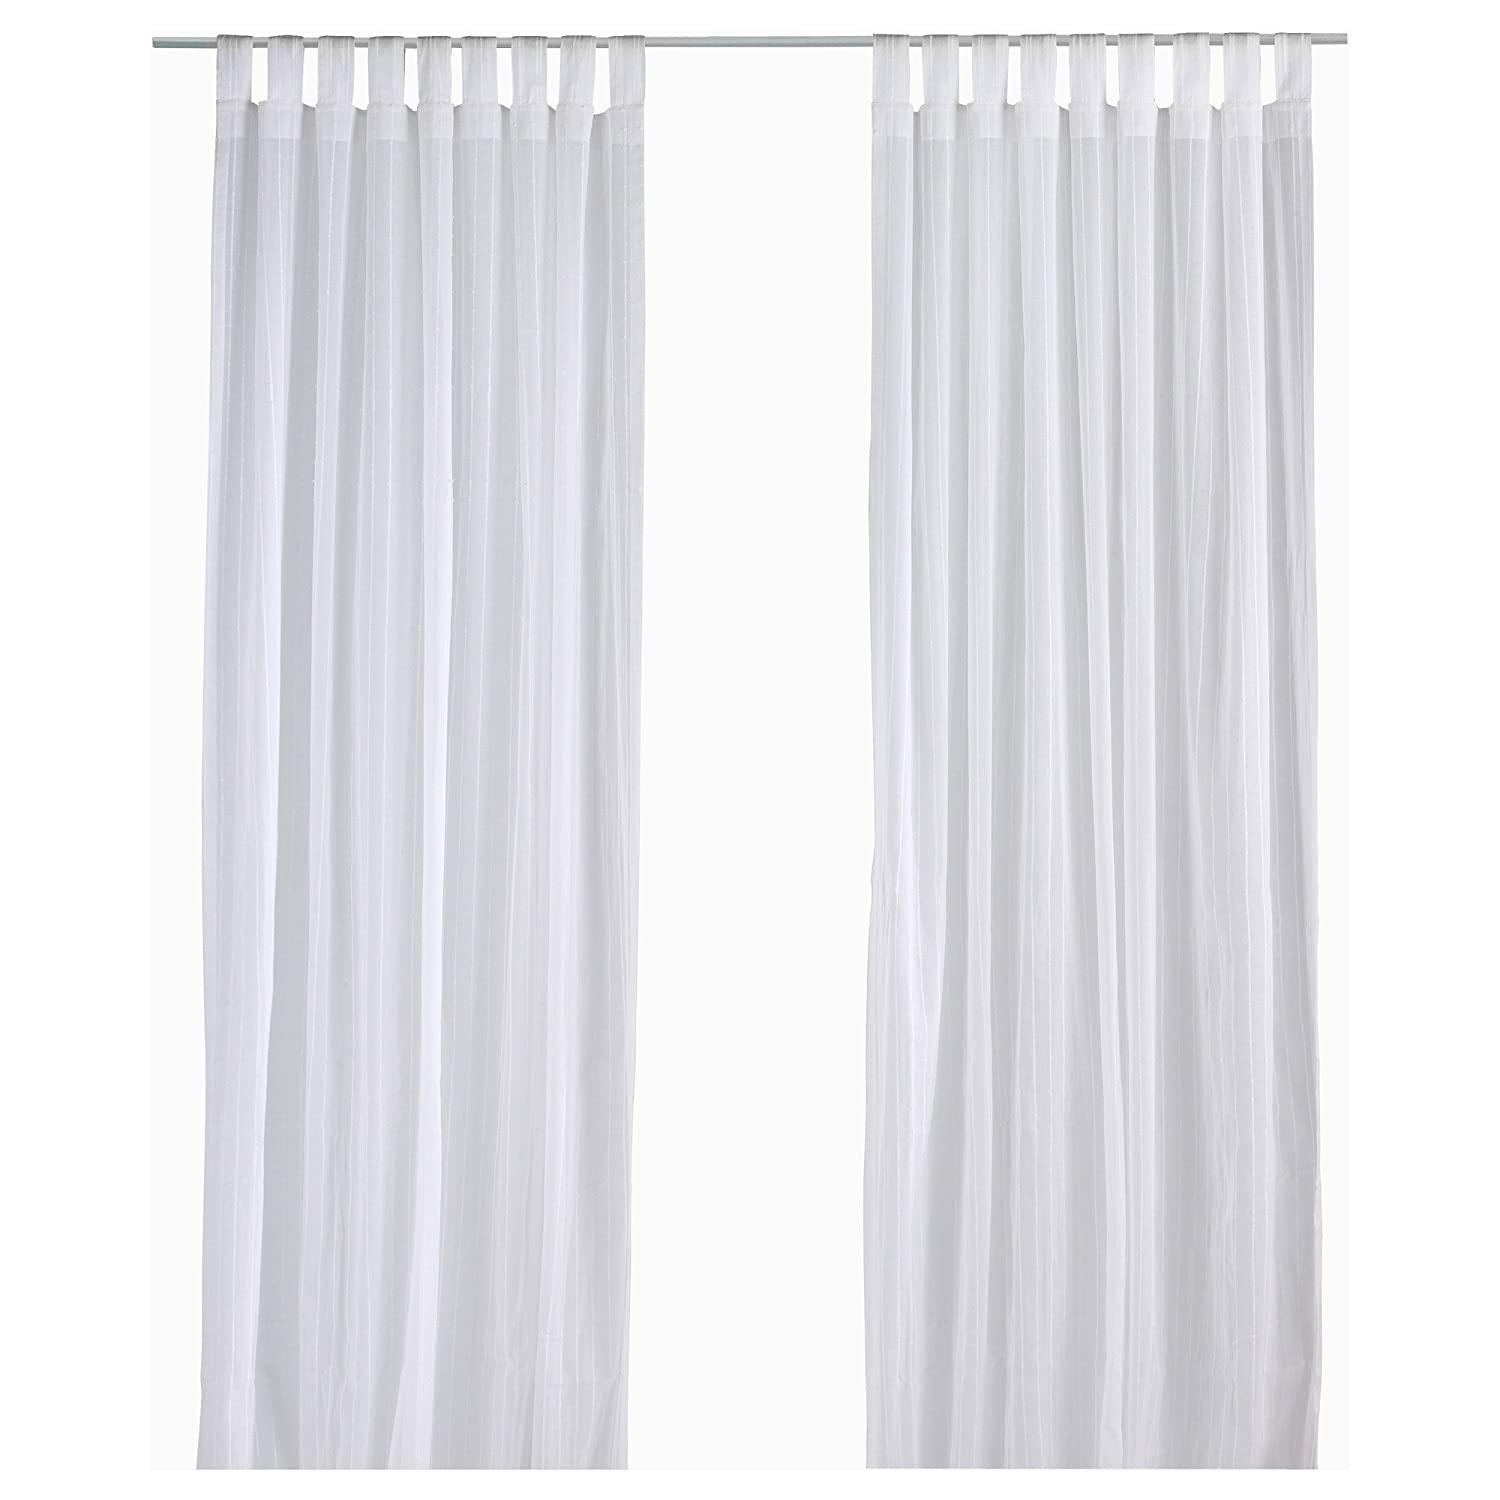 Amazon Ikea Matilda Sheer Curtains 1 Pair White Home Kitchen